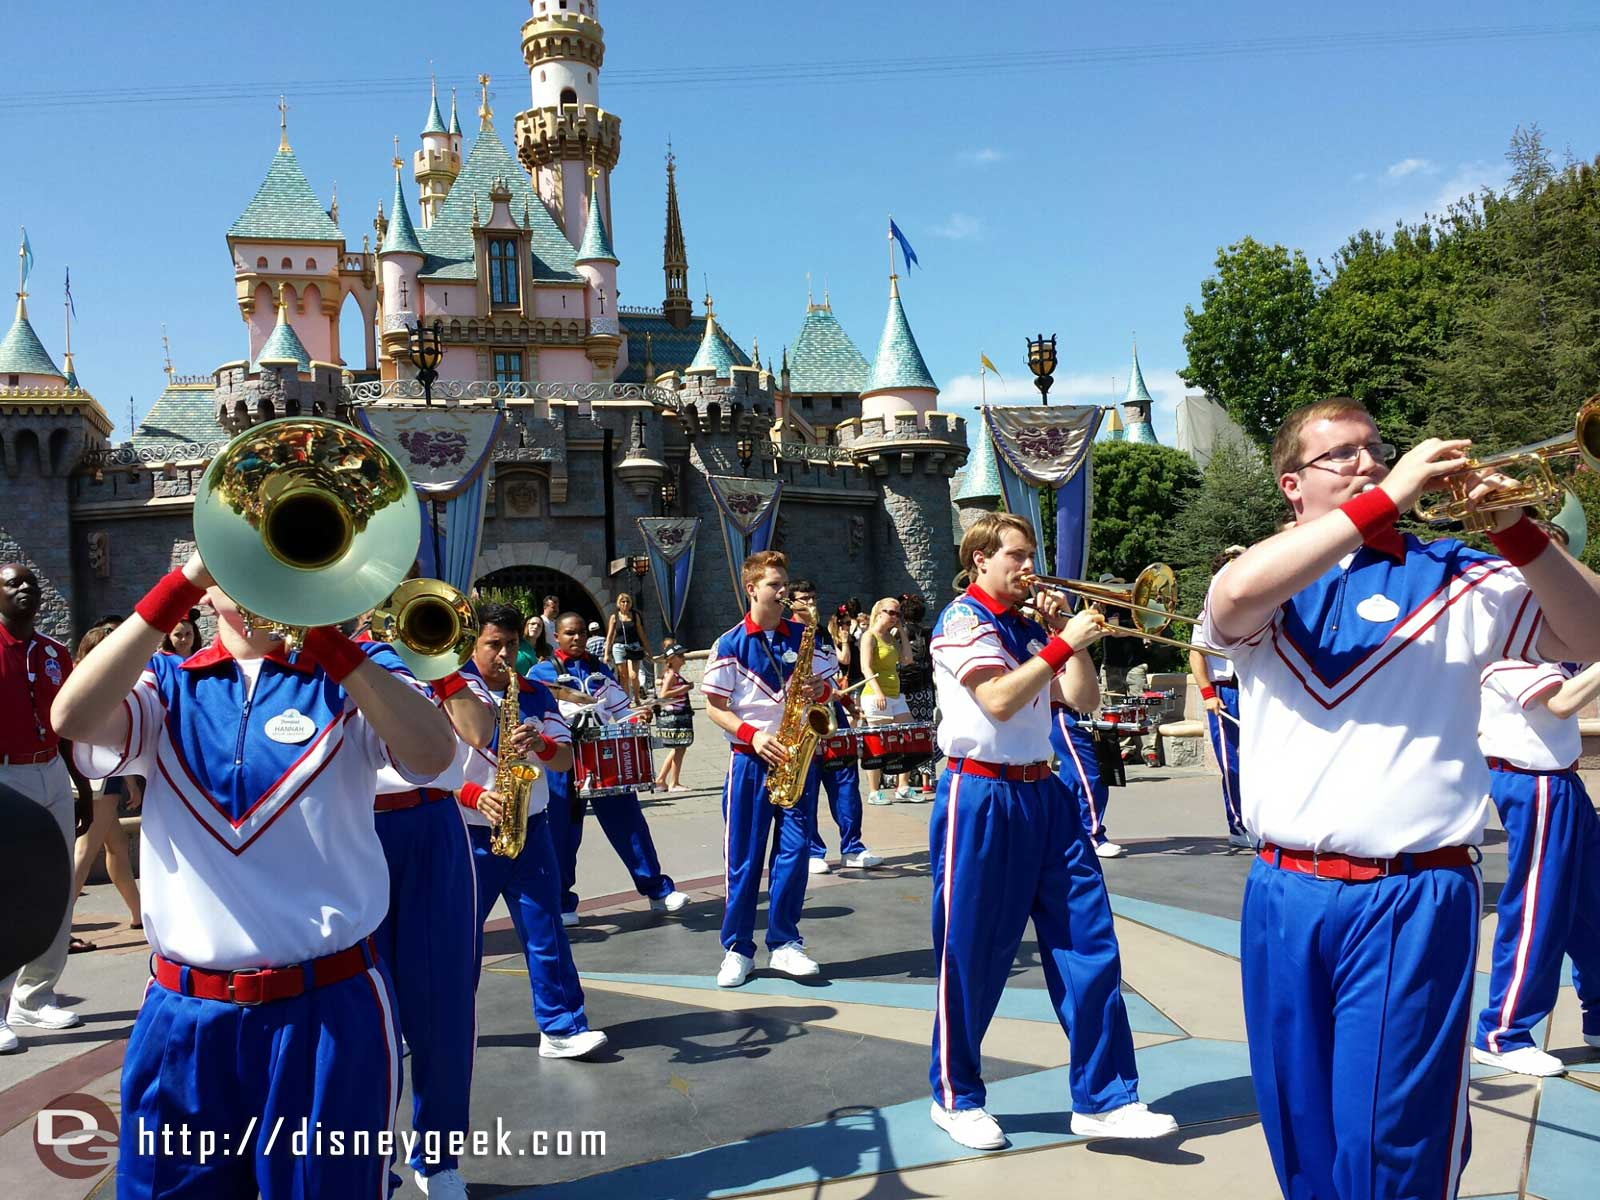 2014 All American College Band 3:25pm Castle Set